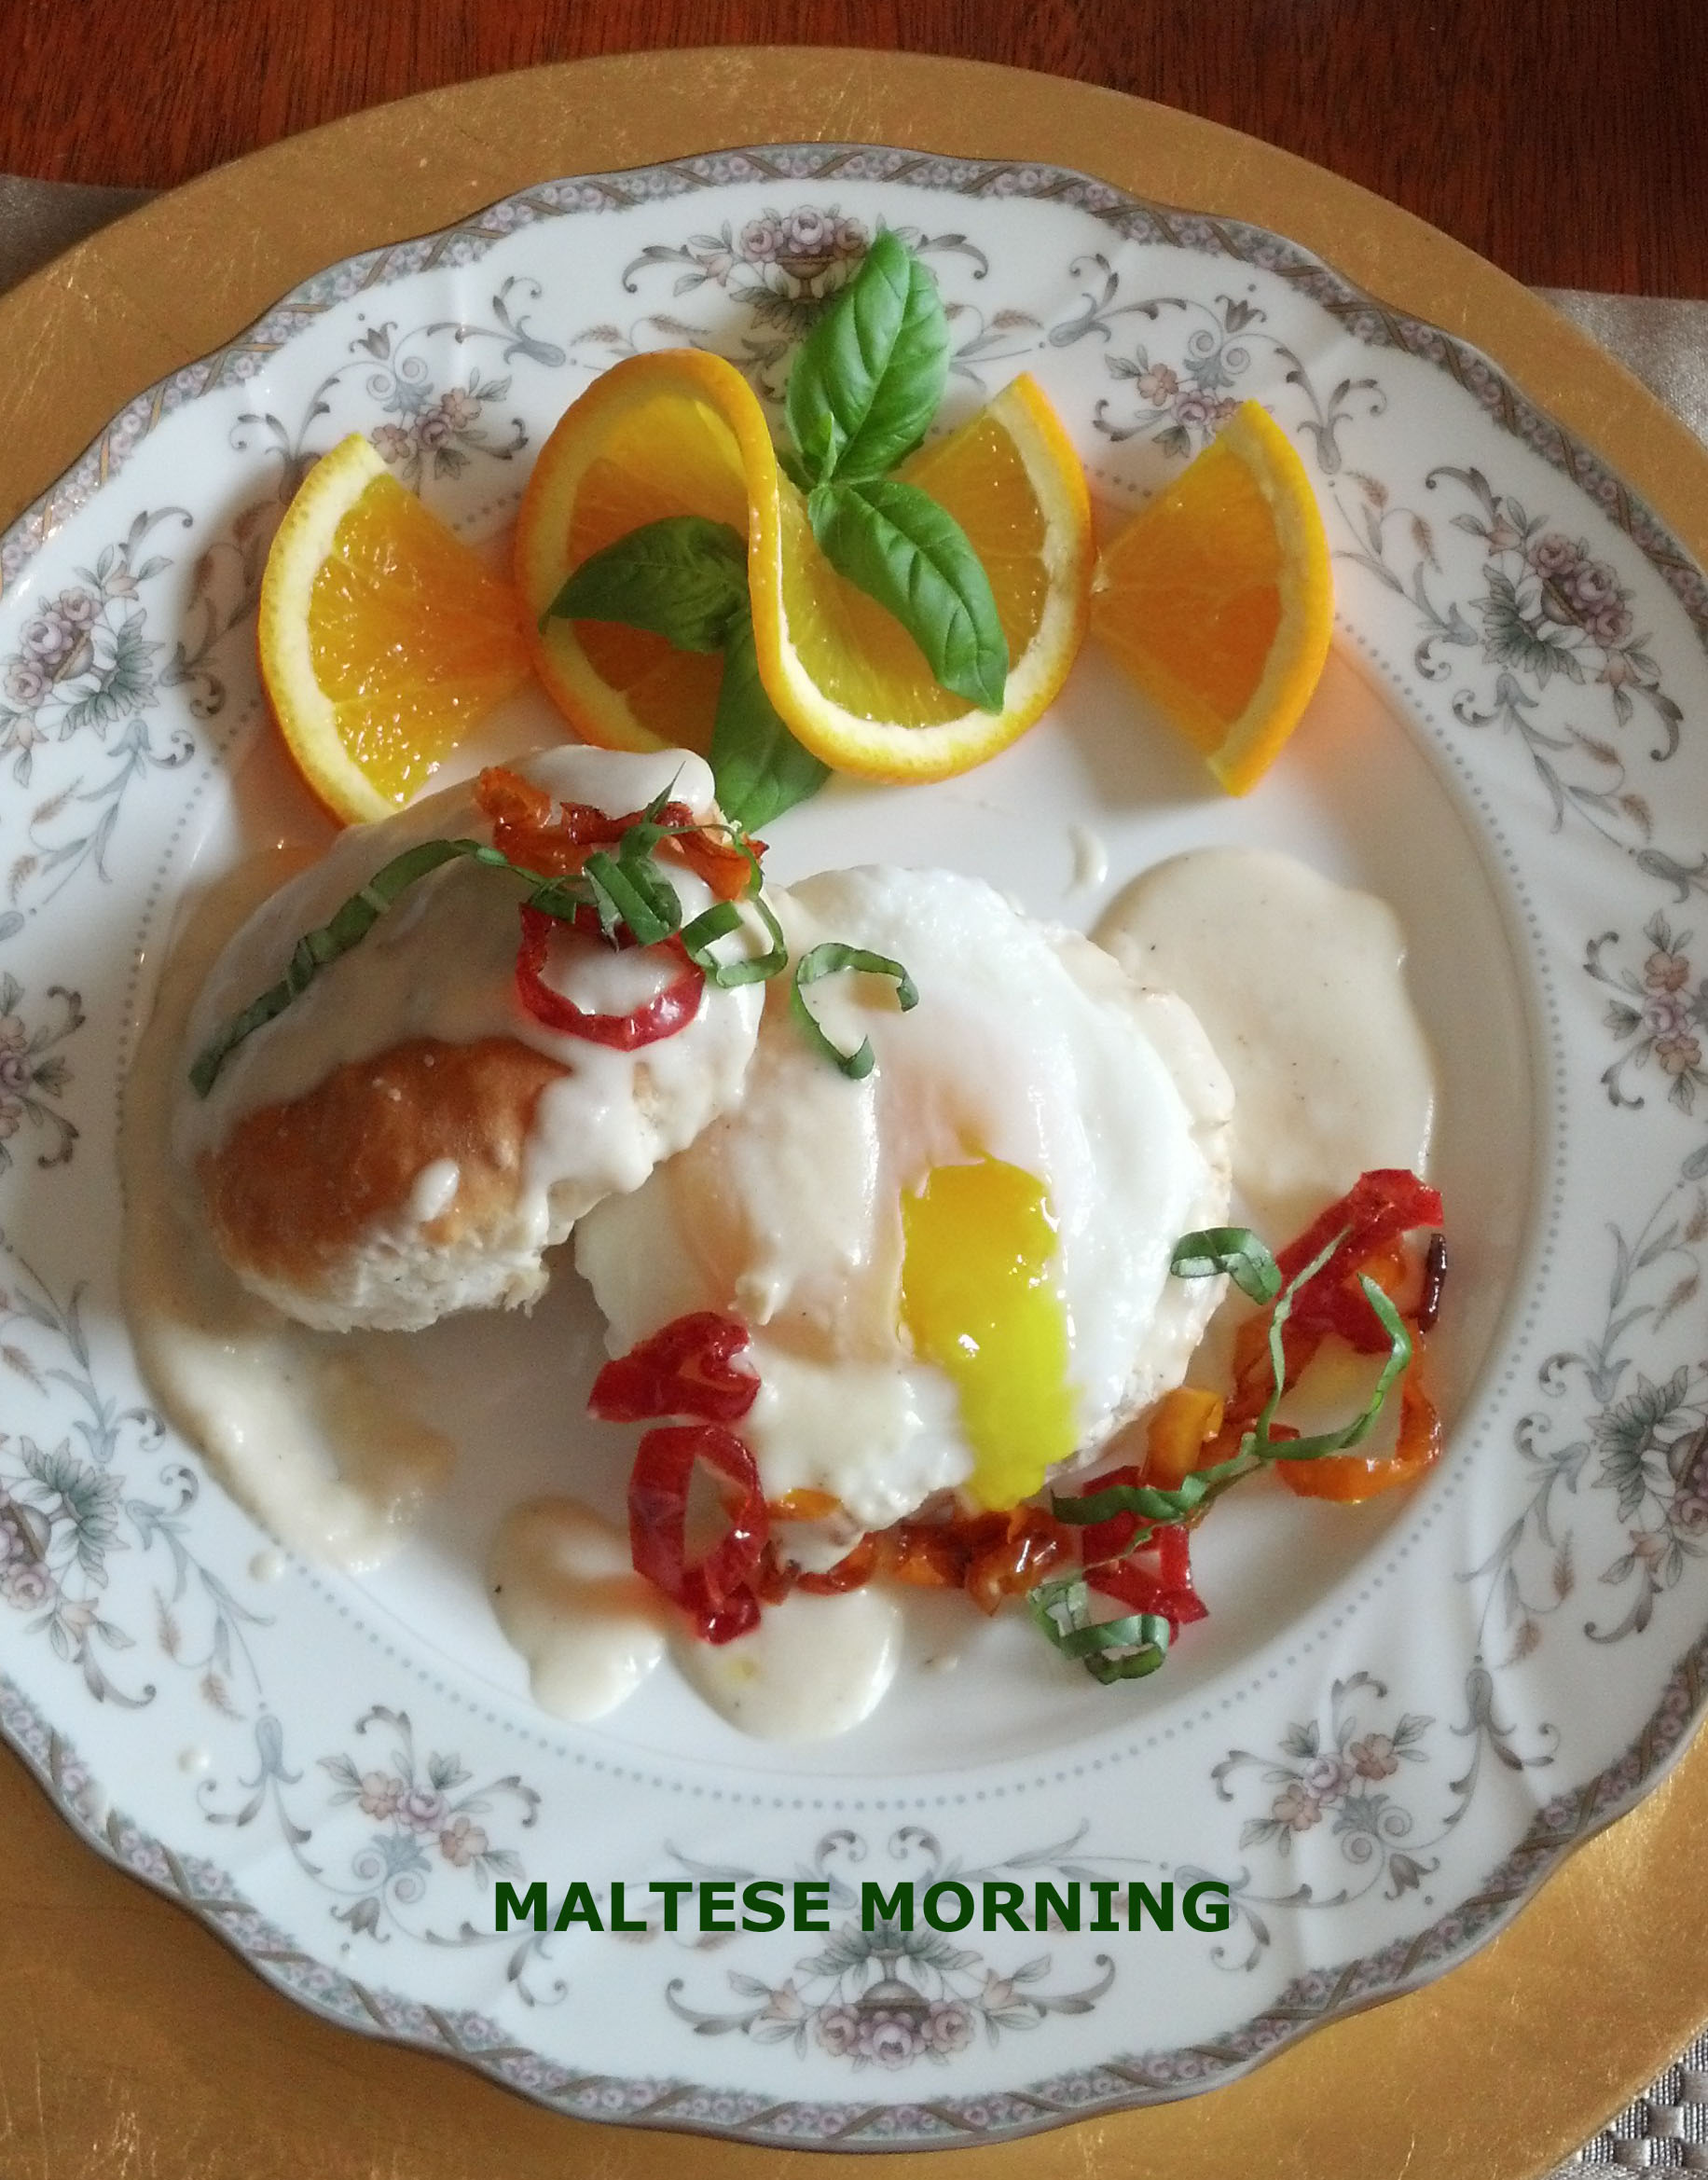 Maltese Morning